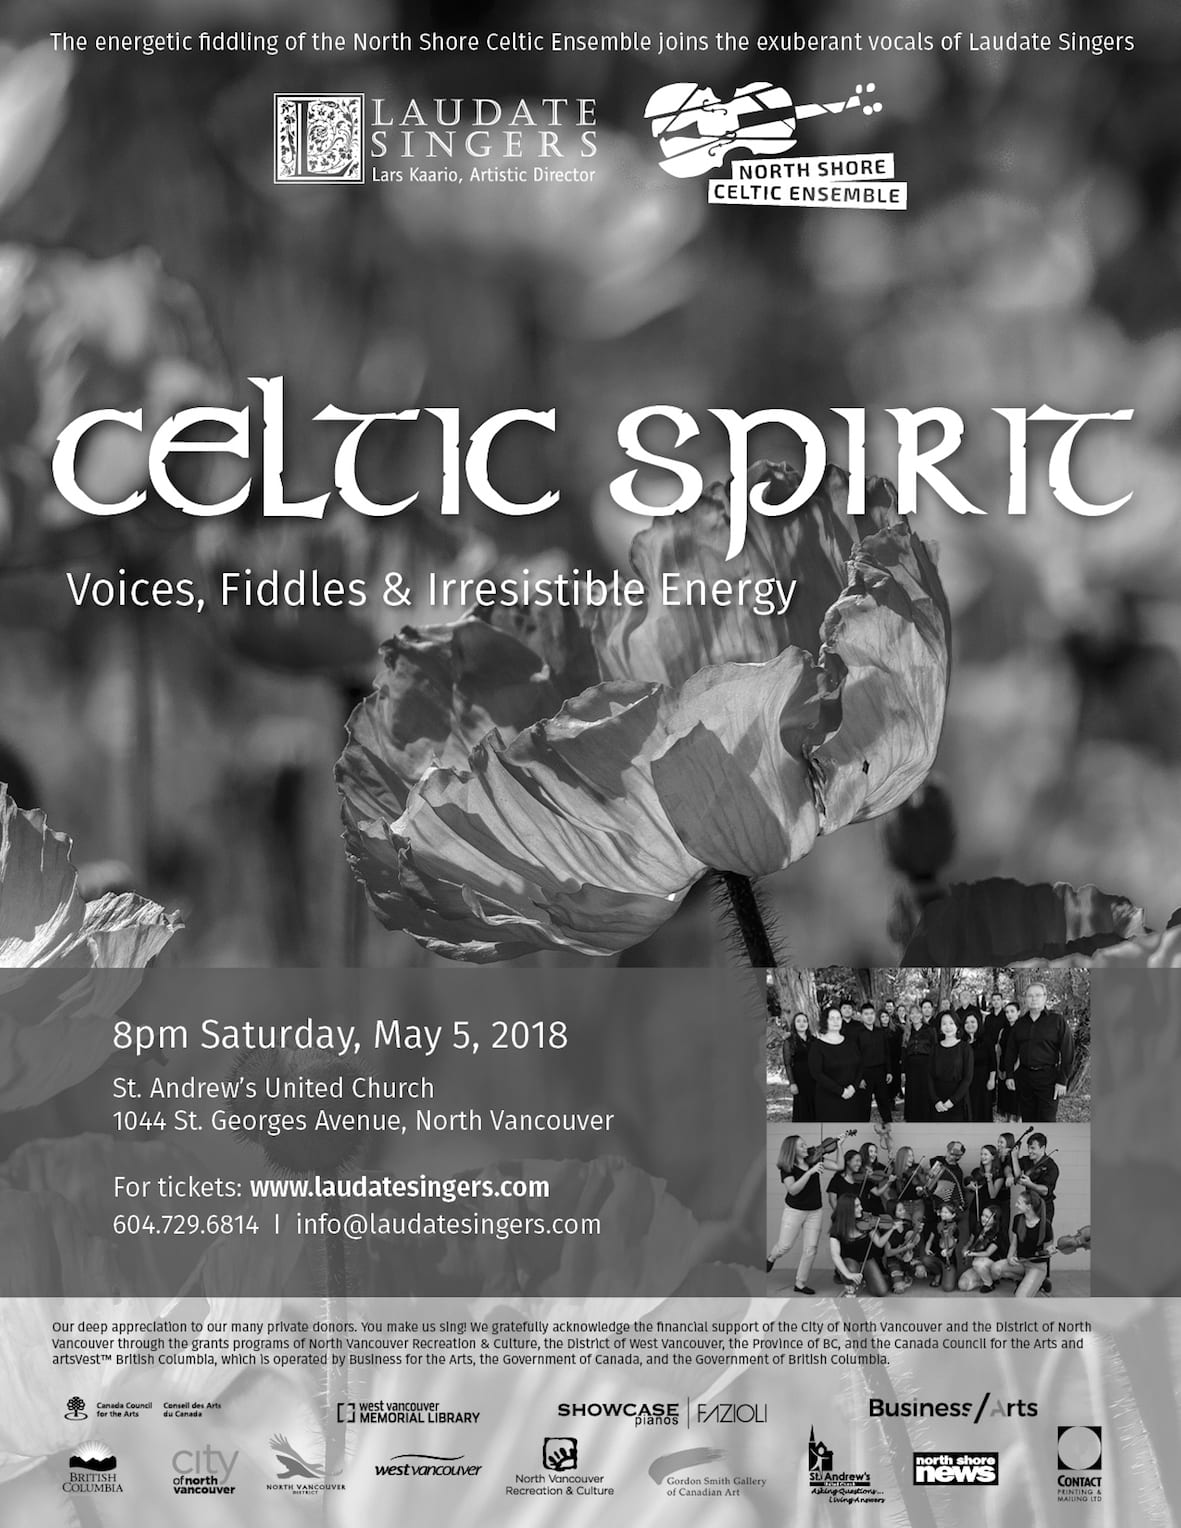 Celtic Spirit – Voices, Fiddles and Irresistible Energy at St. Andrew's United Church